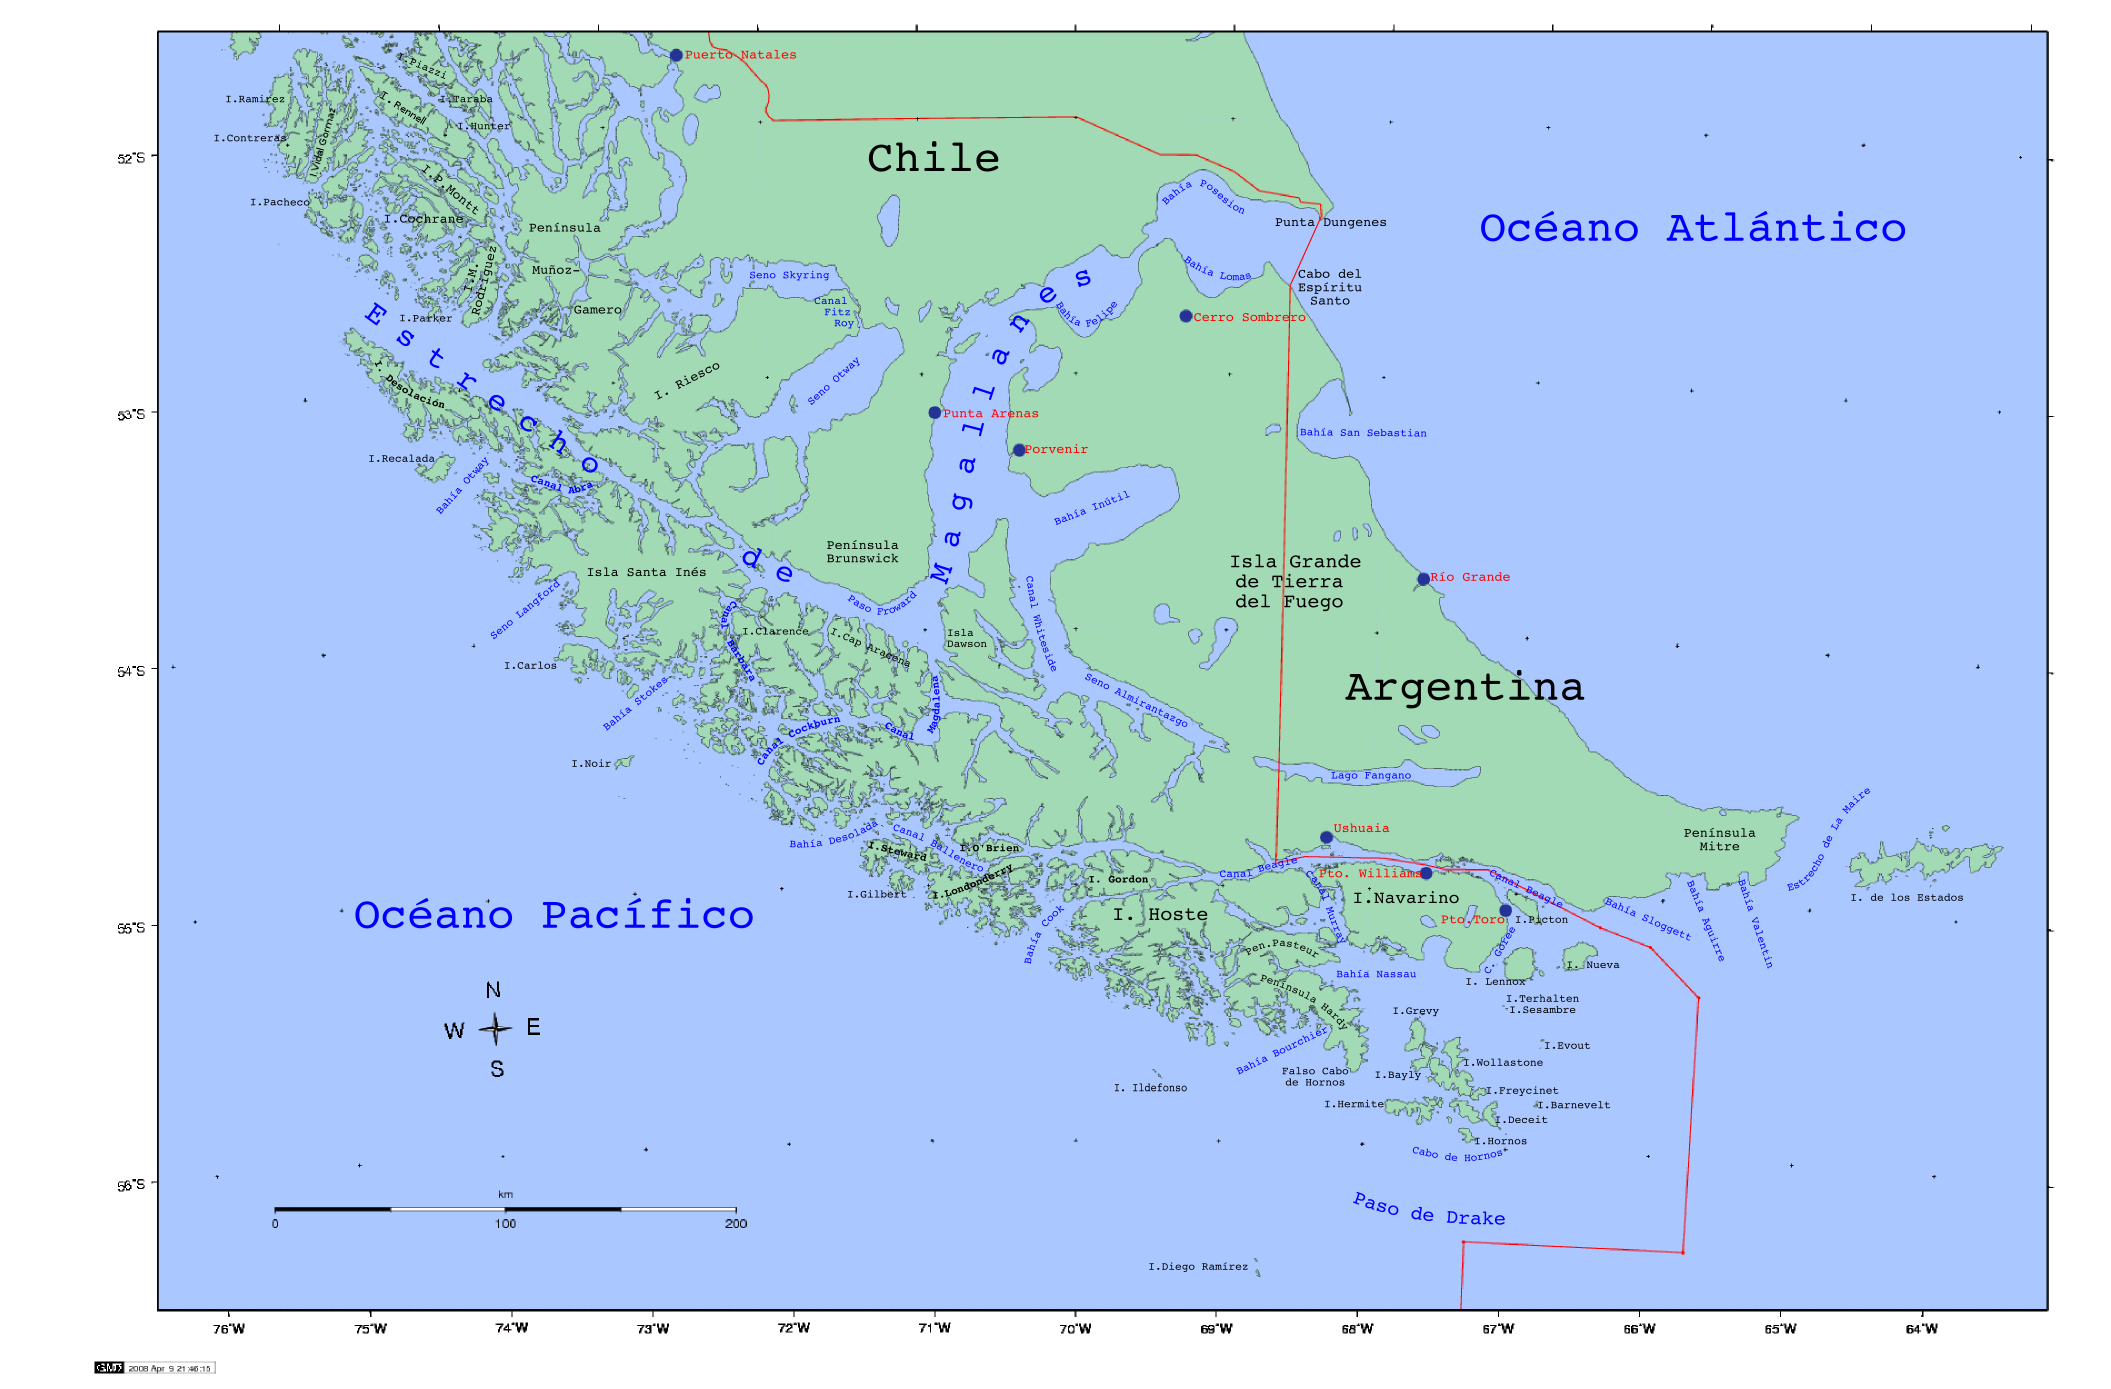 d9e83918c26 http://upload.wikimedia.org/wikipedia/commons/a/ab/Chile.estrechodemagallanes.png